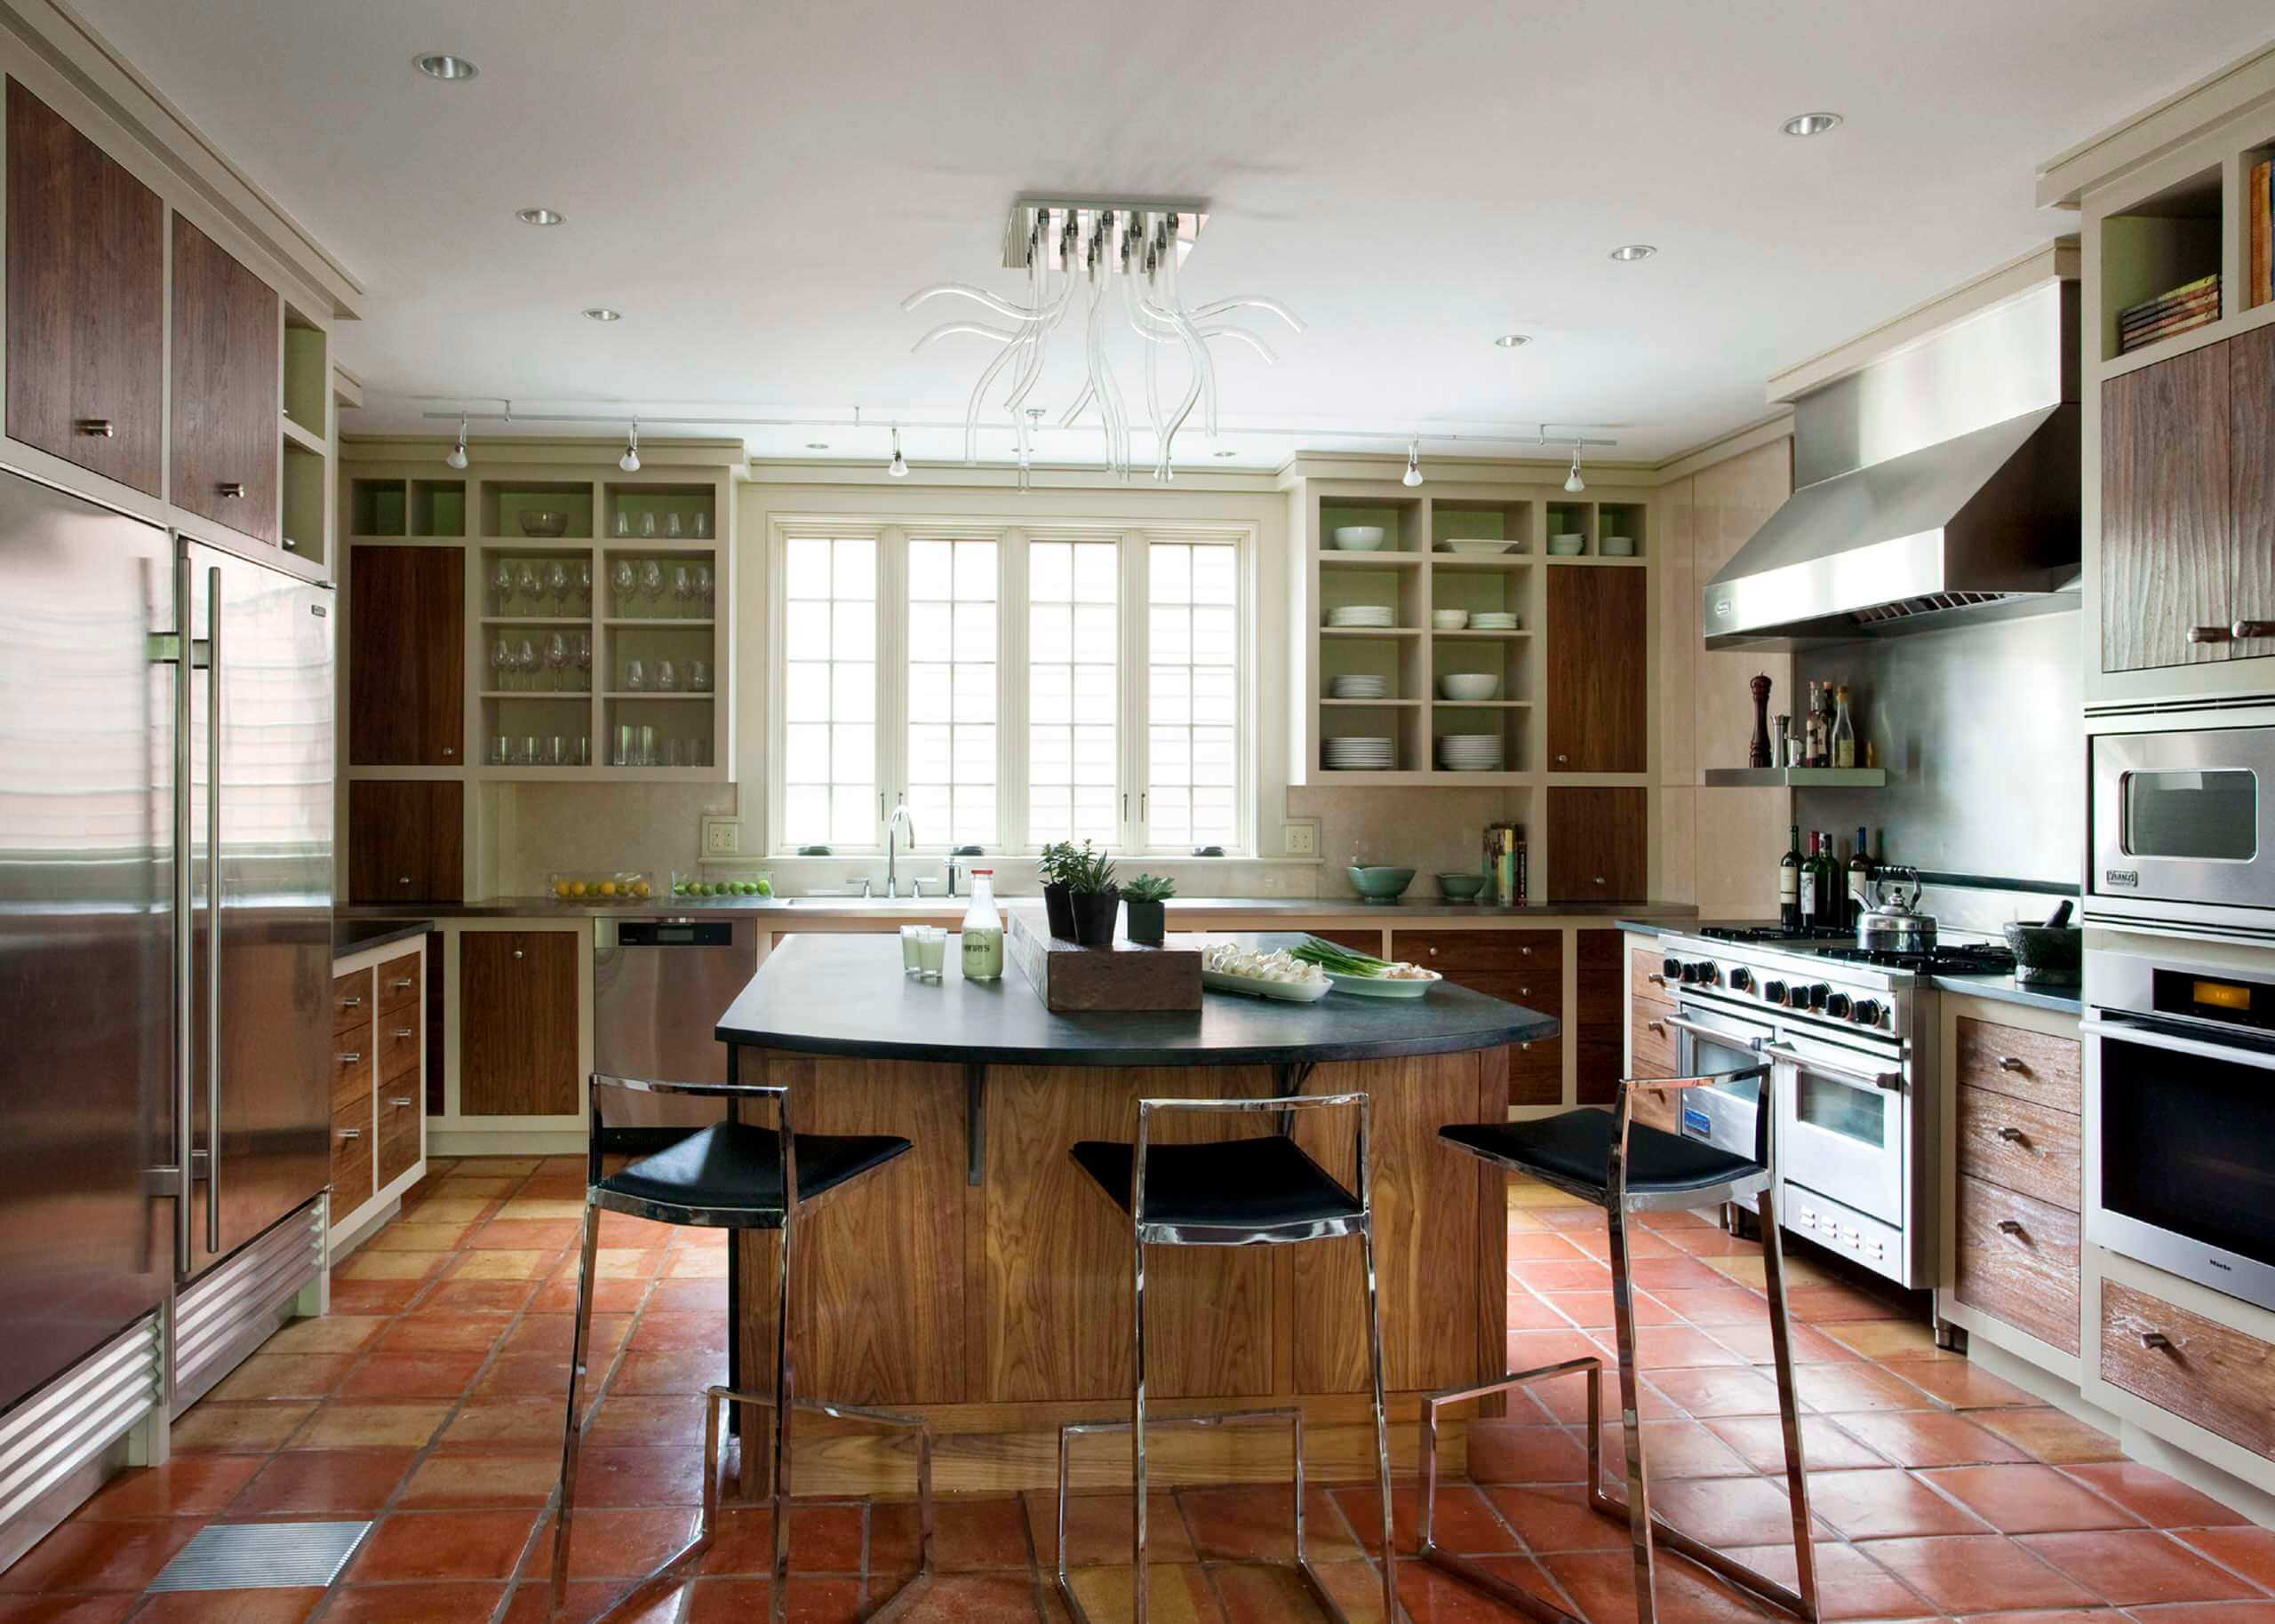 Mountain style u-shaped terra-cotta floor enclosed kitchen photo in Boston with stainless steel appliances, open cabinets, dark wood cabinets and soapstone countertops